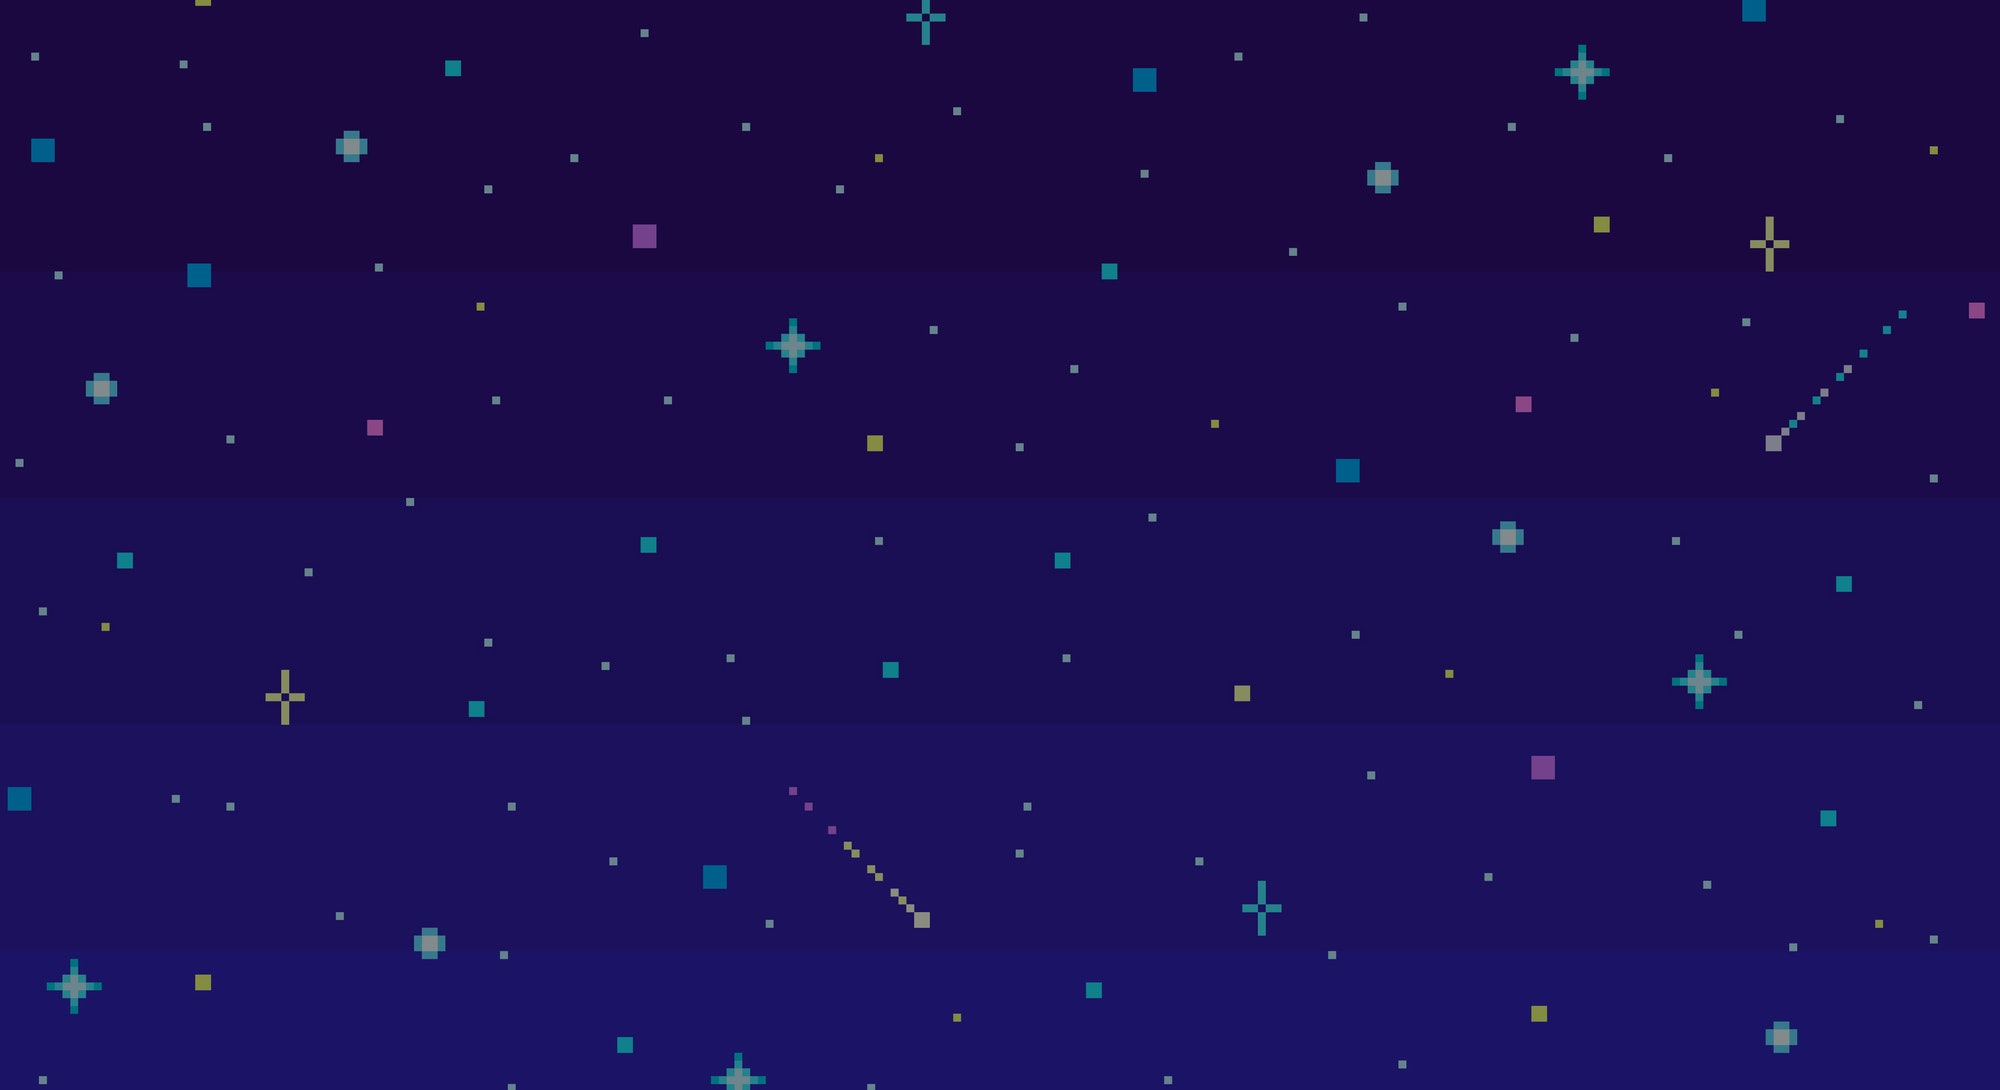 Pixel art night starry sky. Seamless vector background